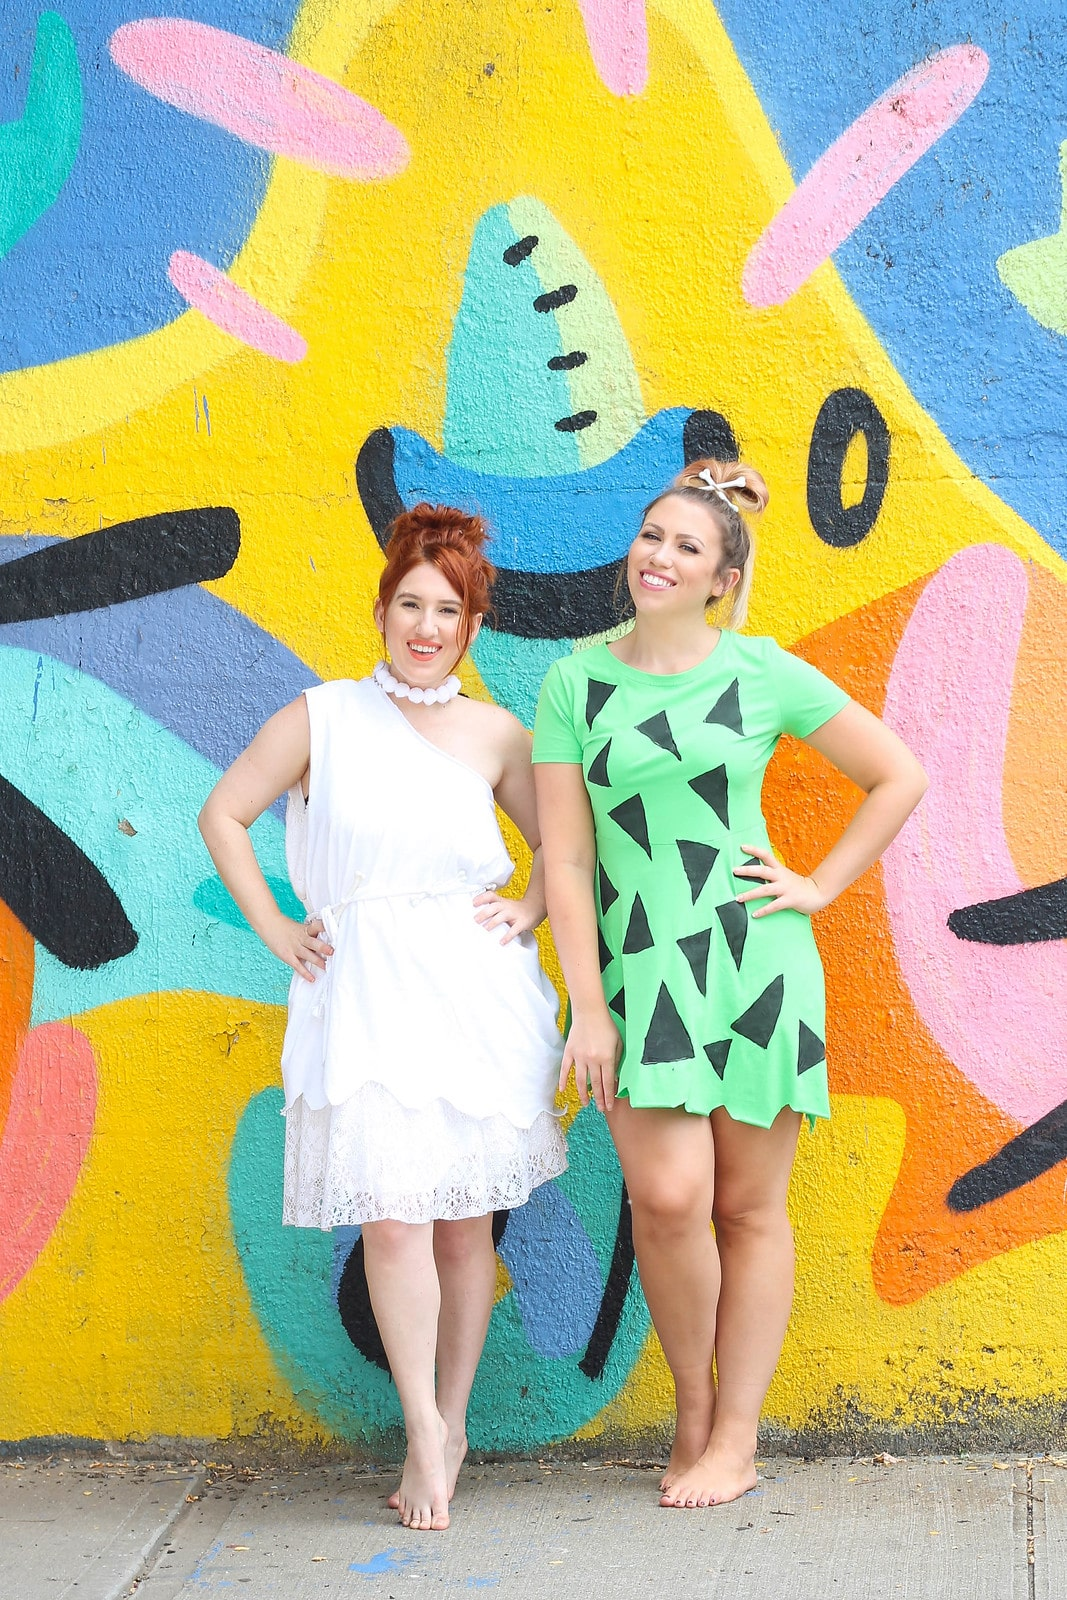 Wilma and Pebbles Flintstones Halloween Costume - Looking for cute, cheap, and easy Halloween costumes or unique last-minute, DIY Halloween costume ideas? Check out these 40 Creative Halloween Costume Ideas for women, moms, cute couples, small and large families, and best friends! You're sure to win the best Halloween costumes with these picks. #halloween #halloweencostumes #halloweencostumeideas #easycostumes